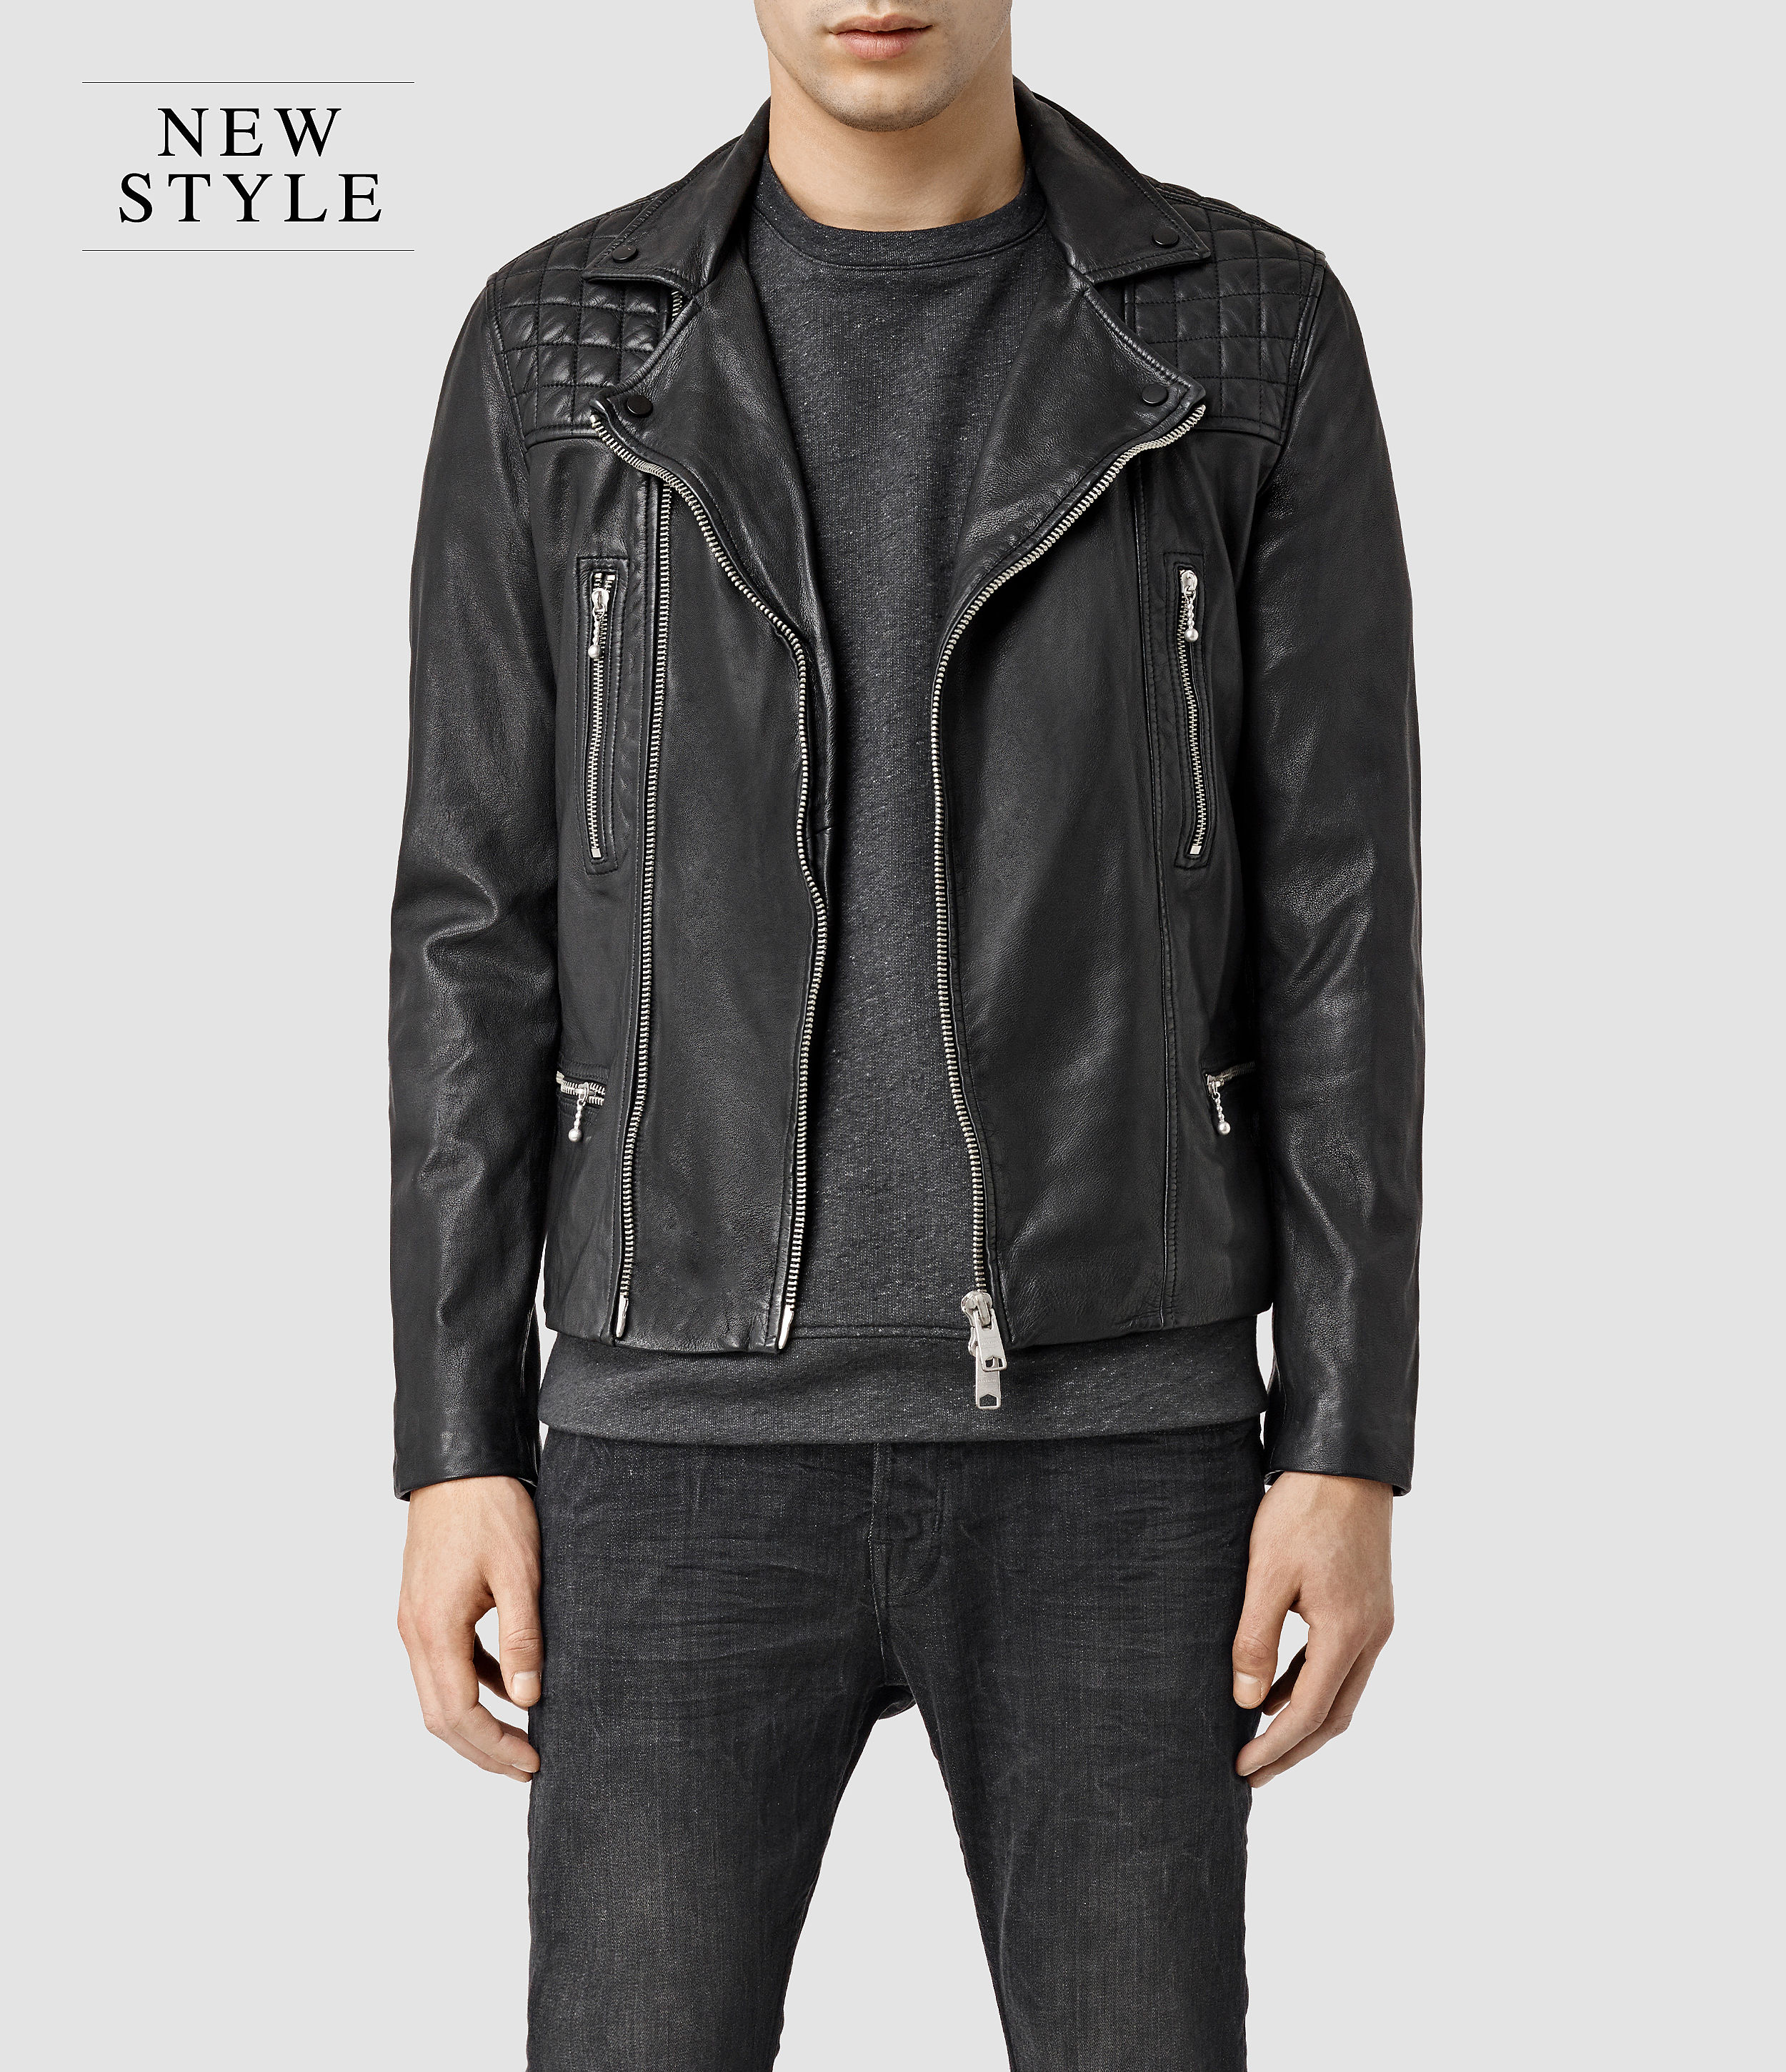 All Saints Leather Jackets For Men